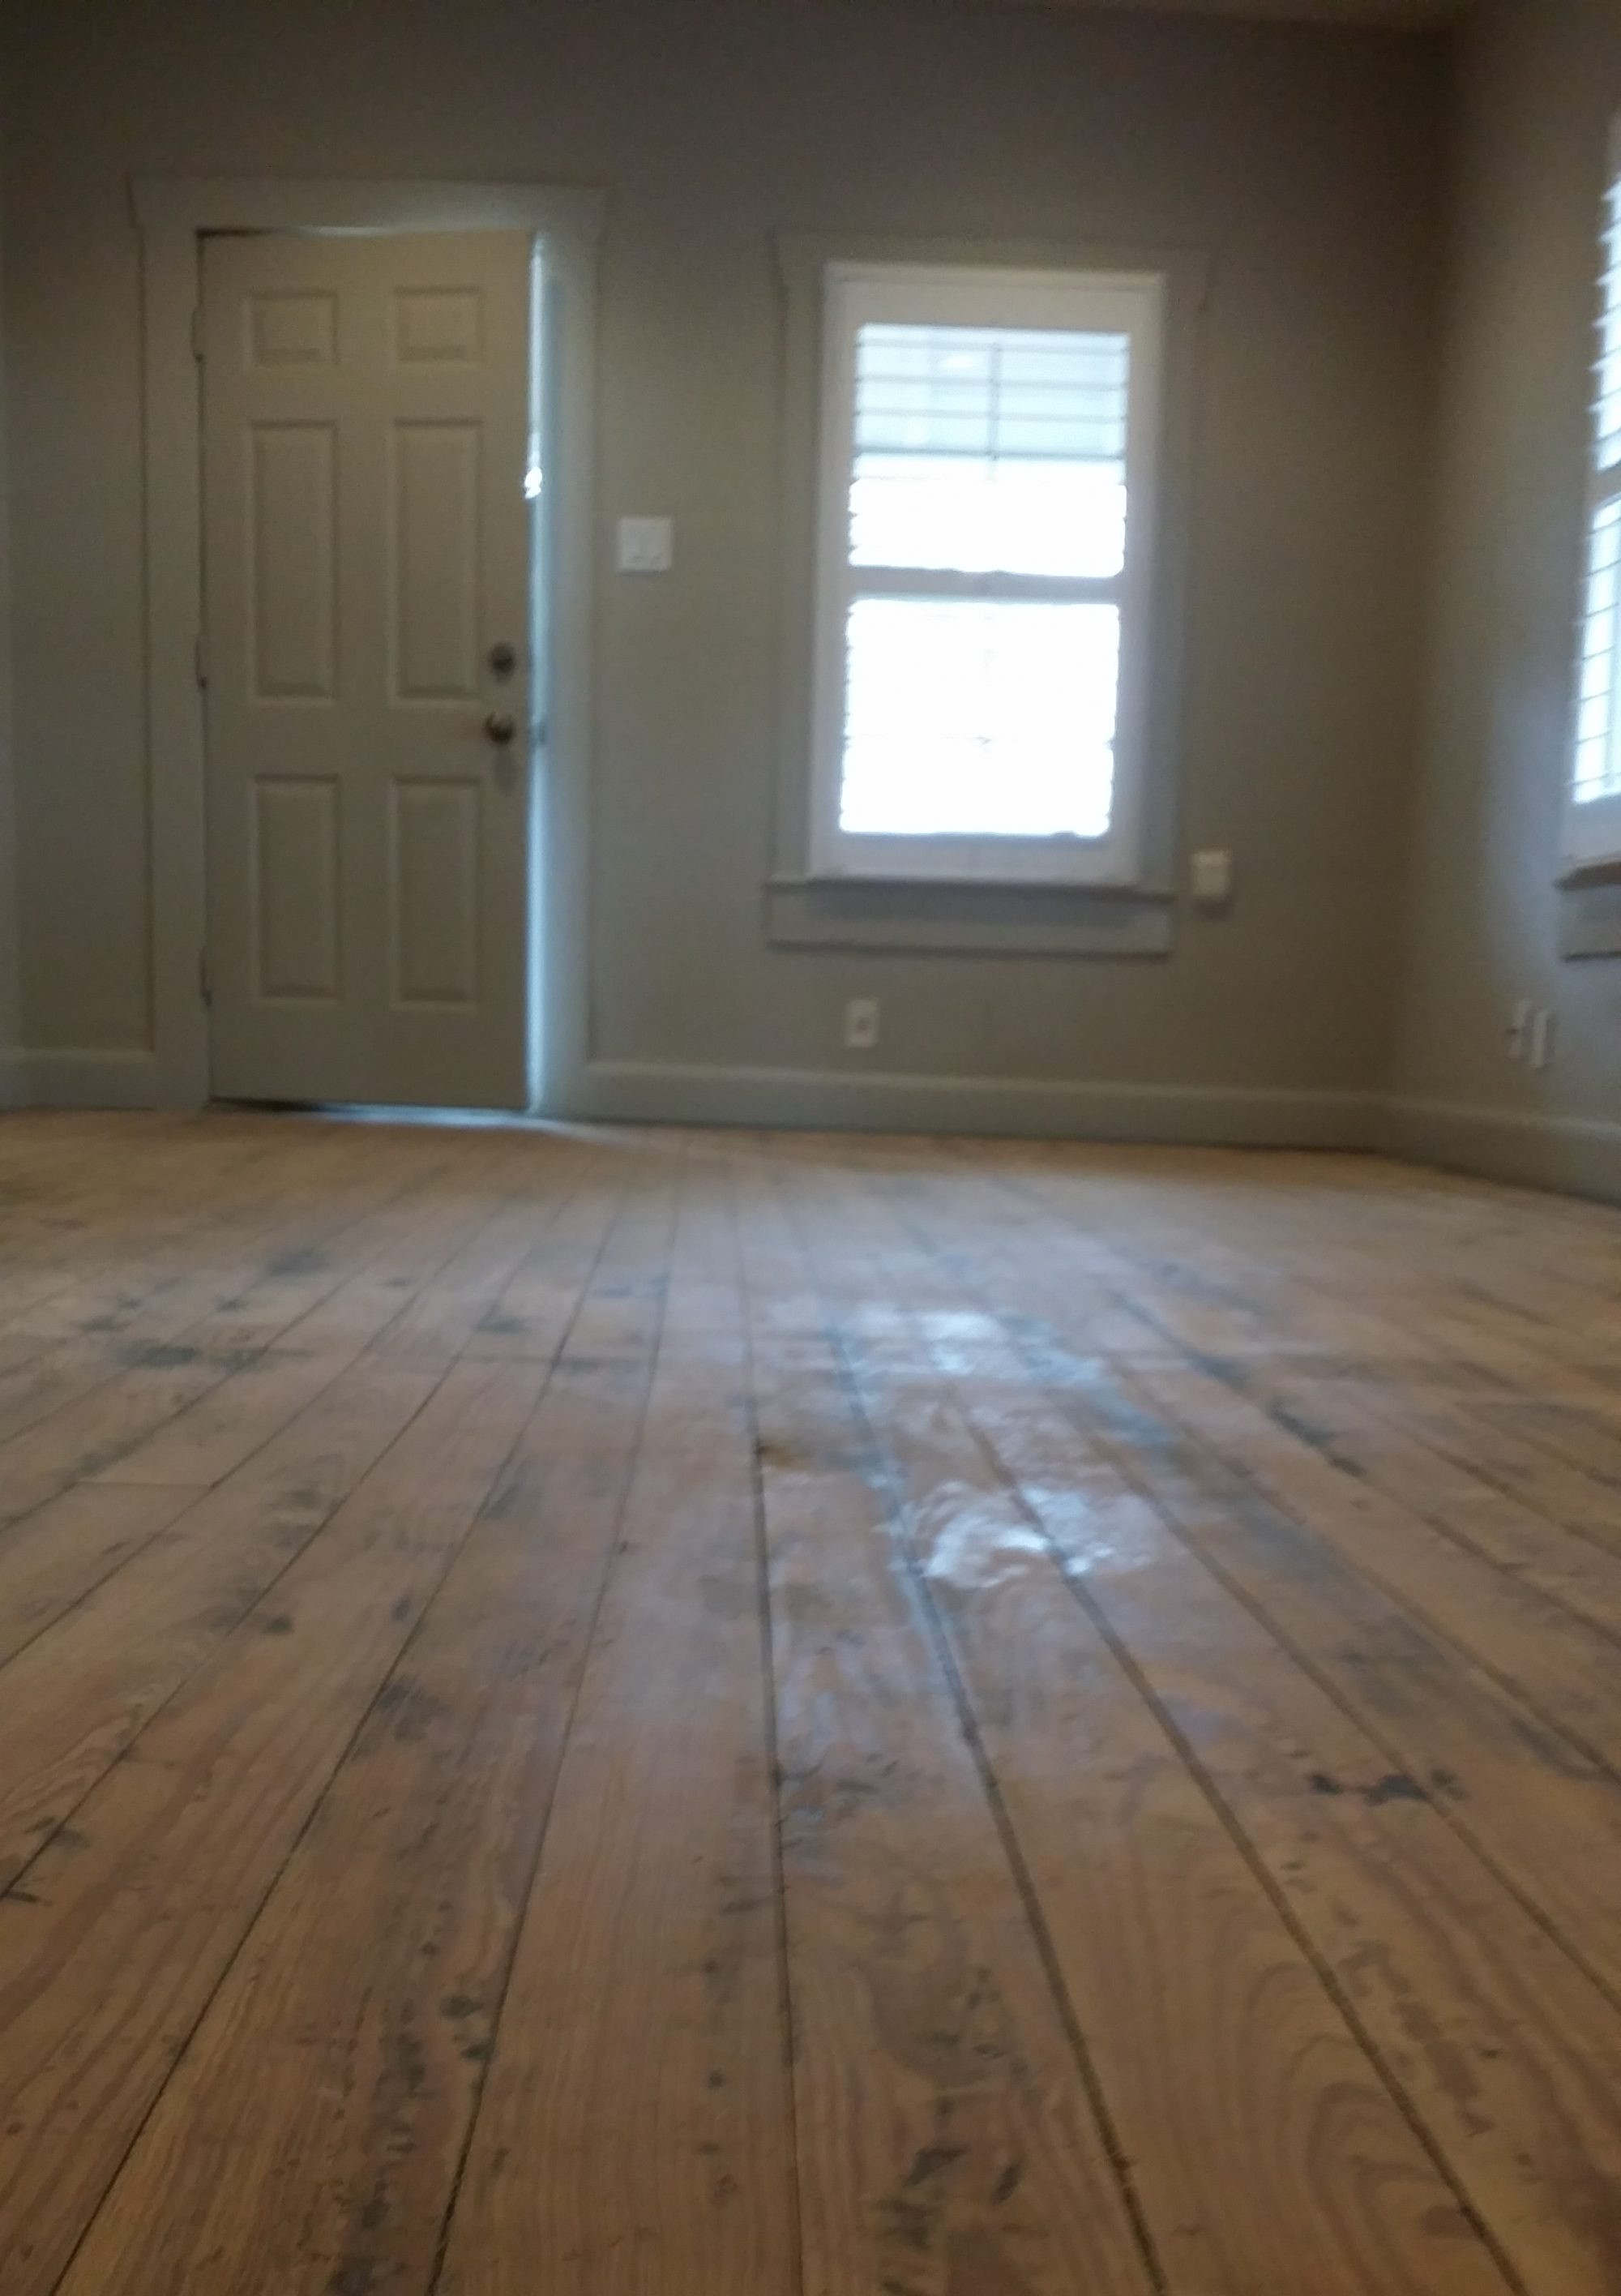 How to Refinish Hardwood Floors Easy Of Refinishing Hardwood Flooring Company Pertaining to Hardwood Flooring Company